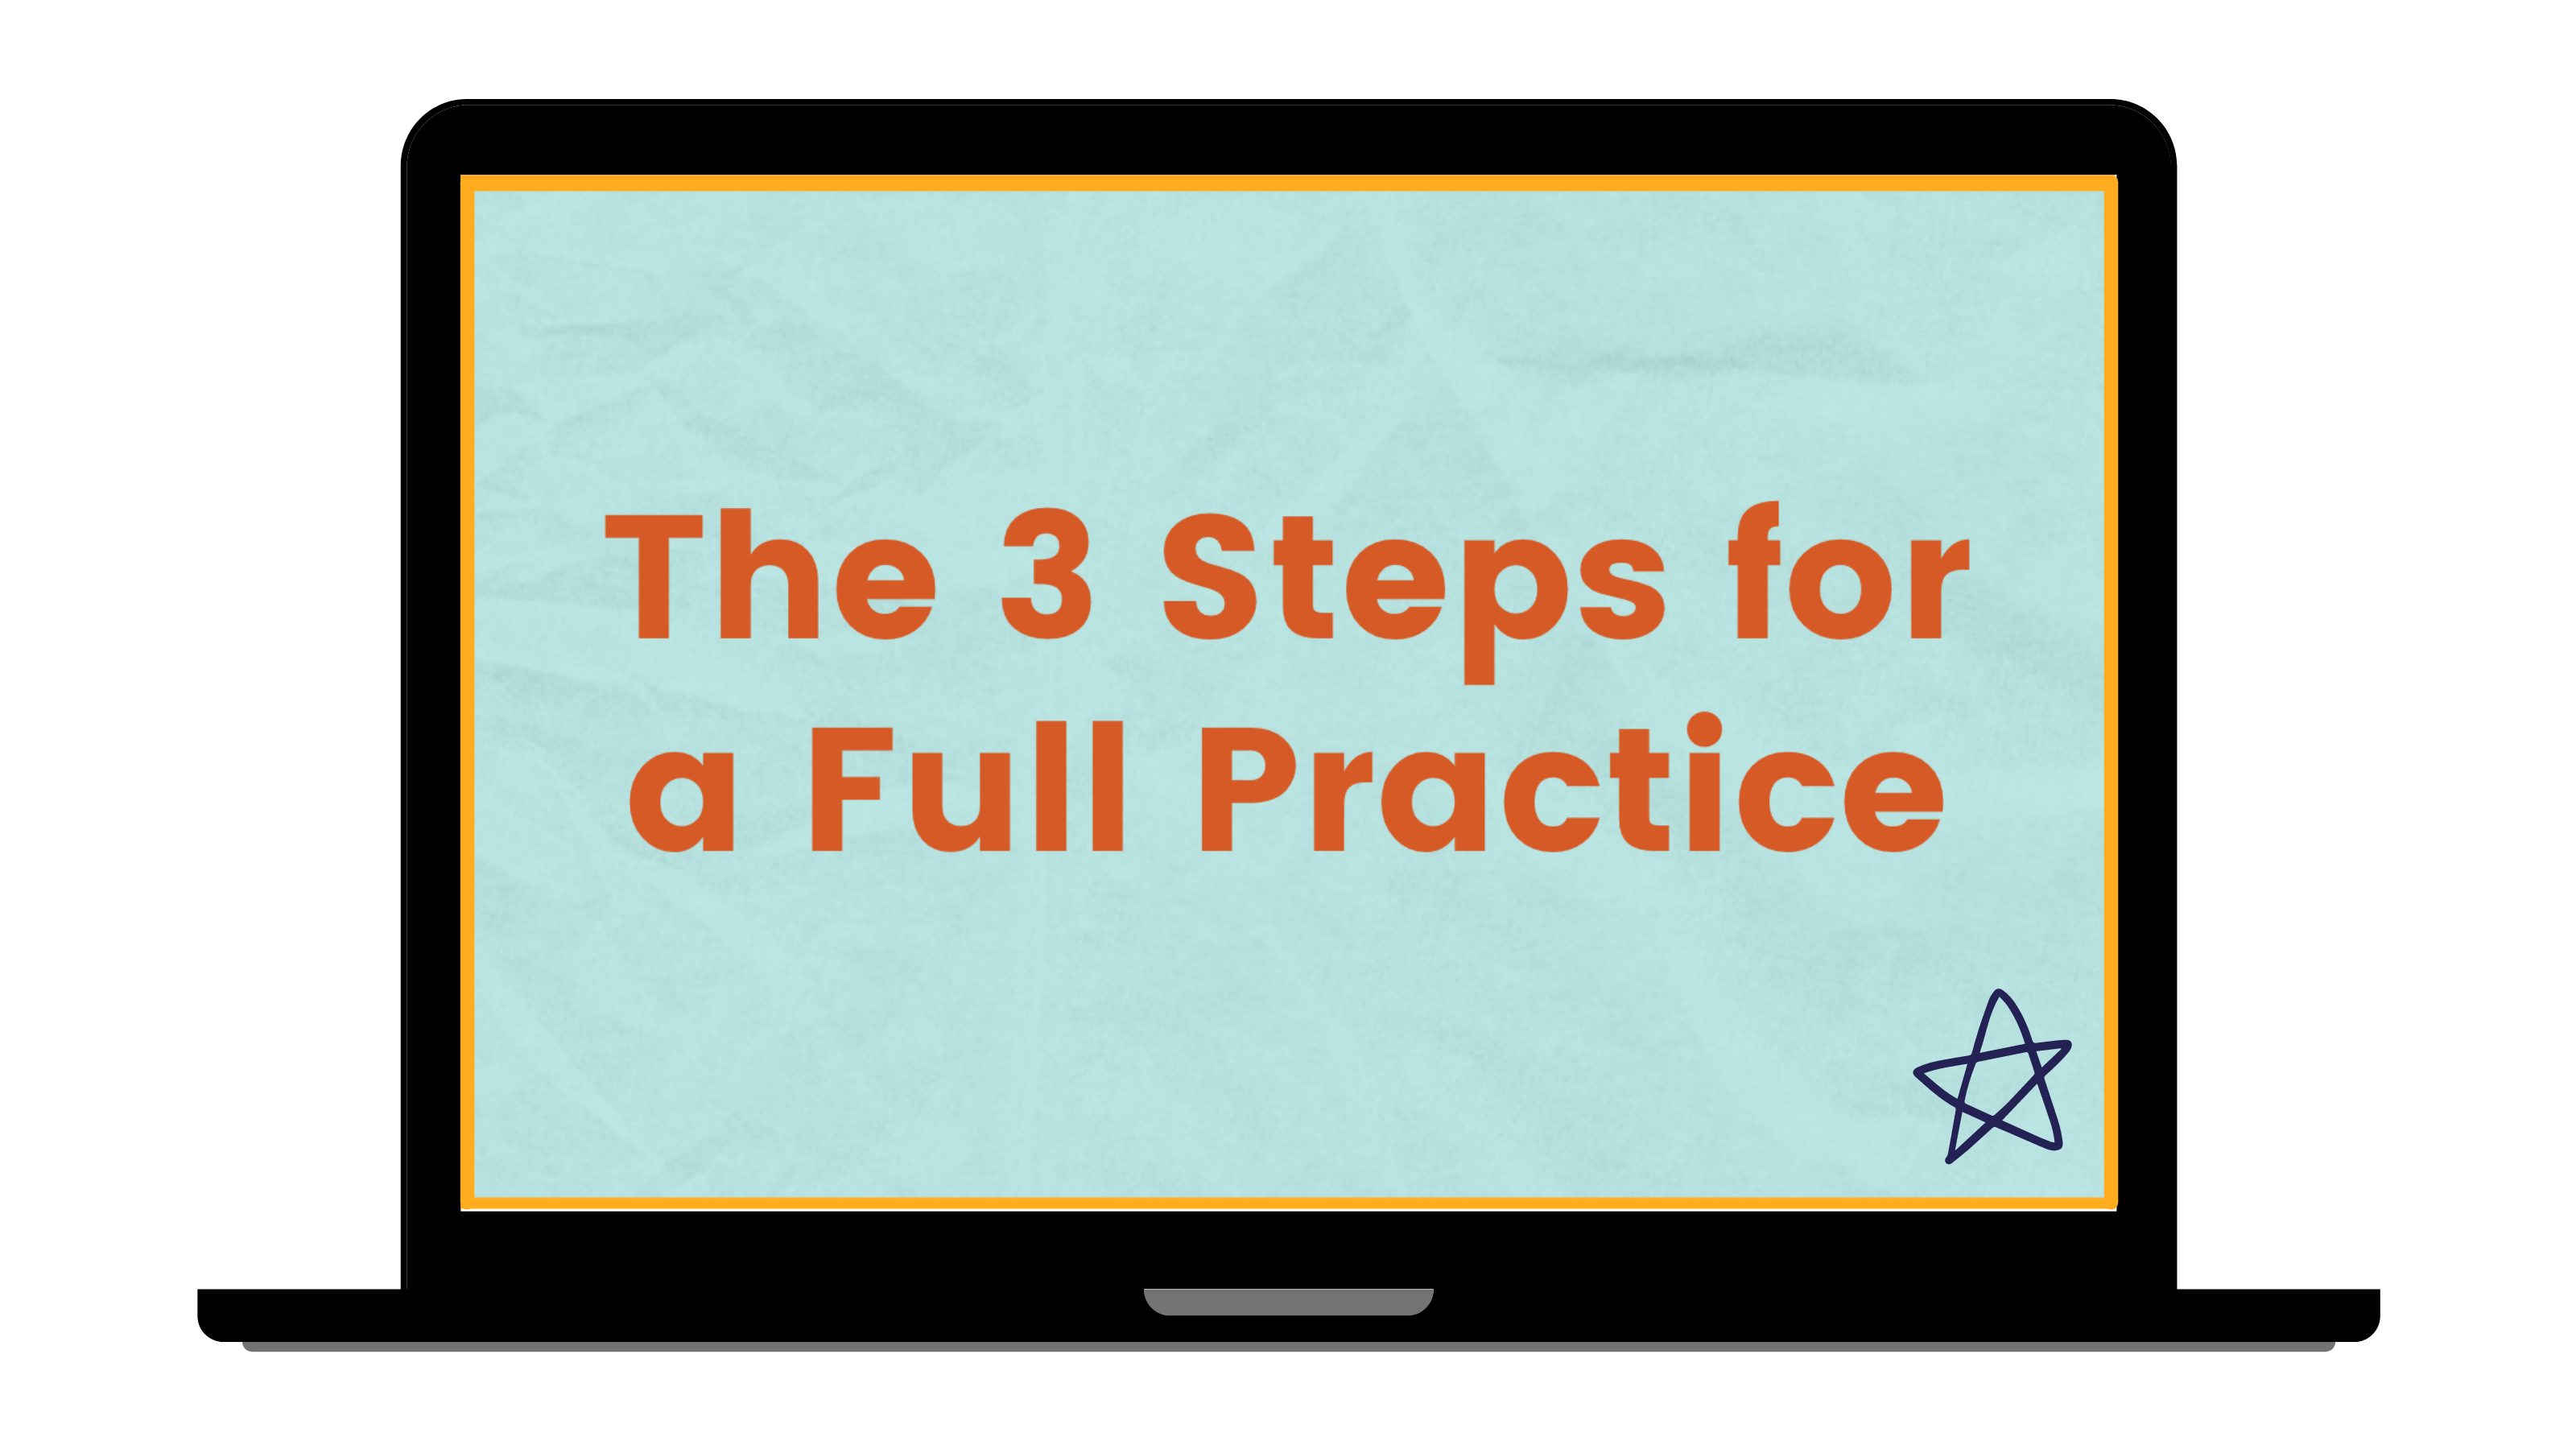 The 3 Steps to a Full Practice